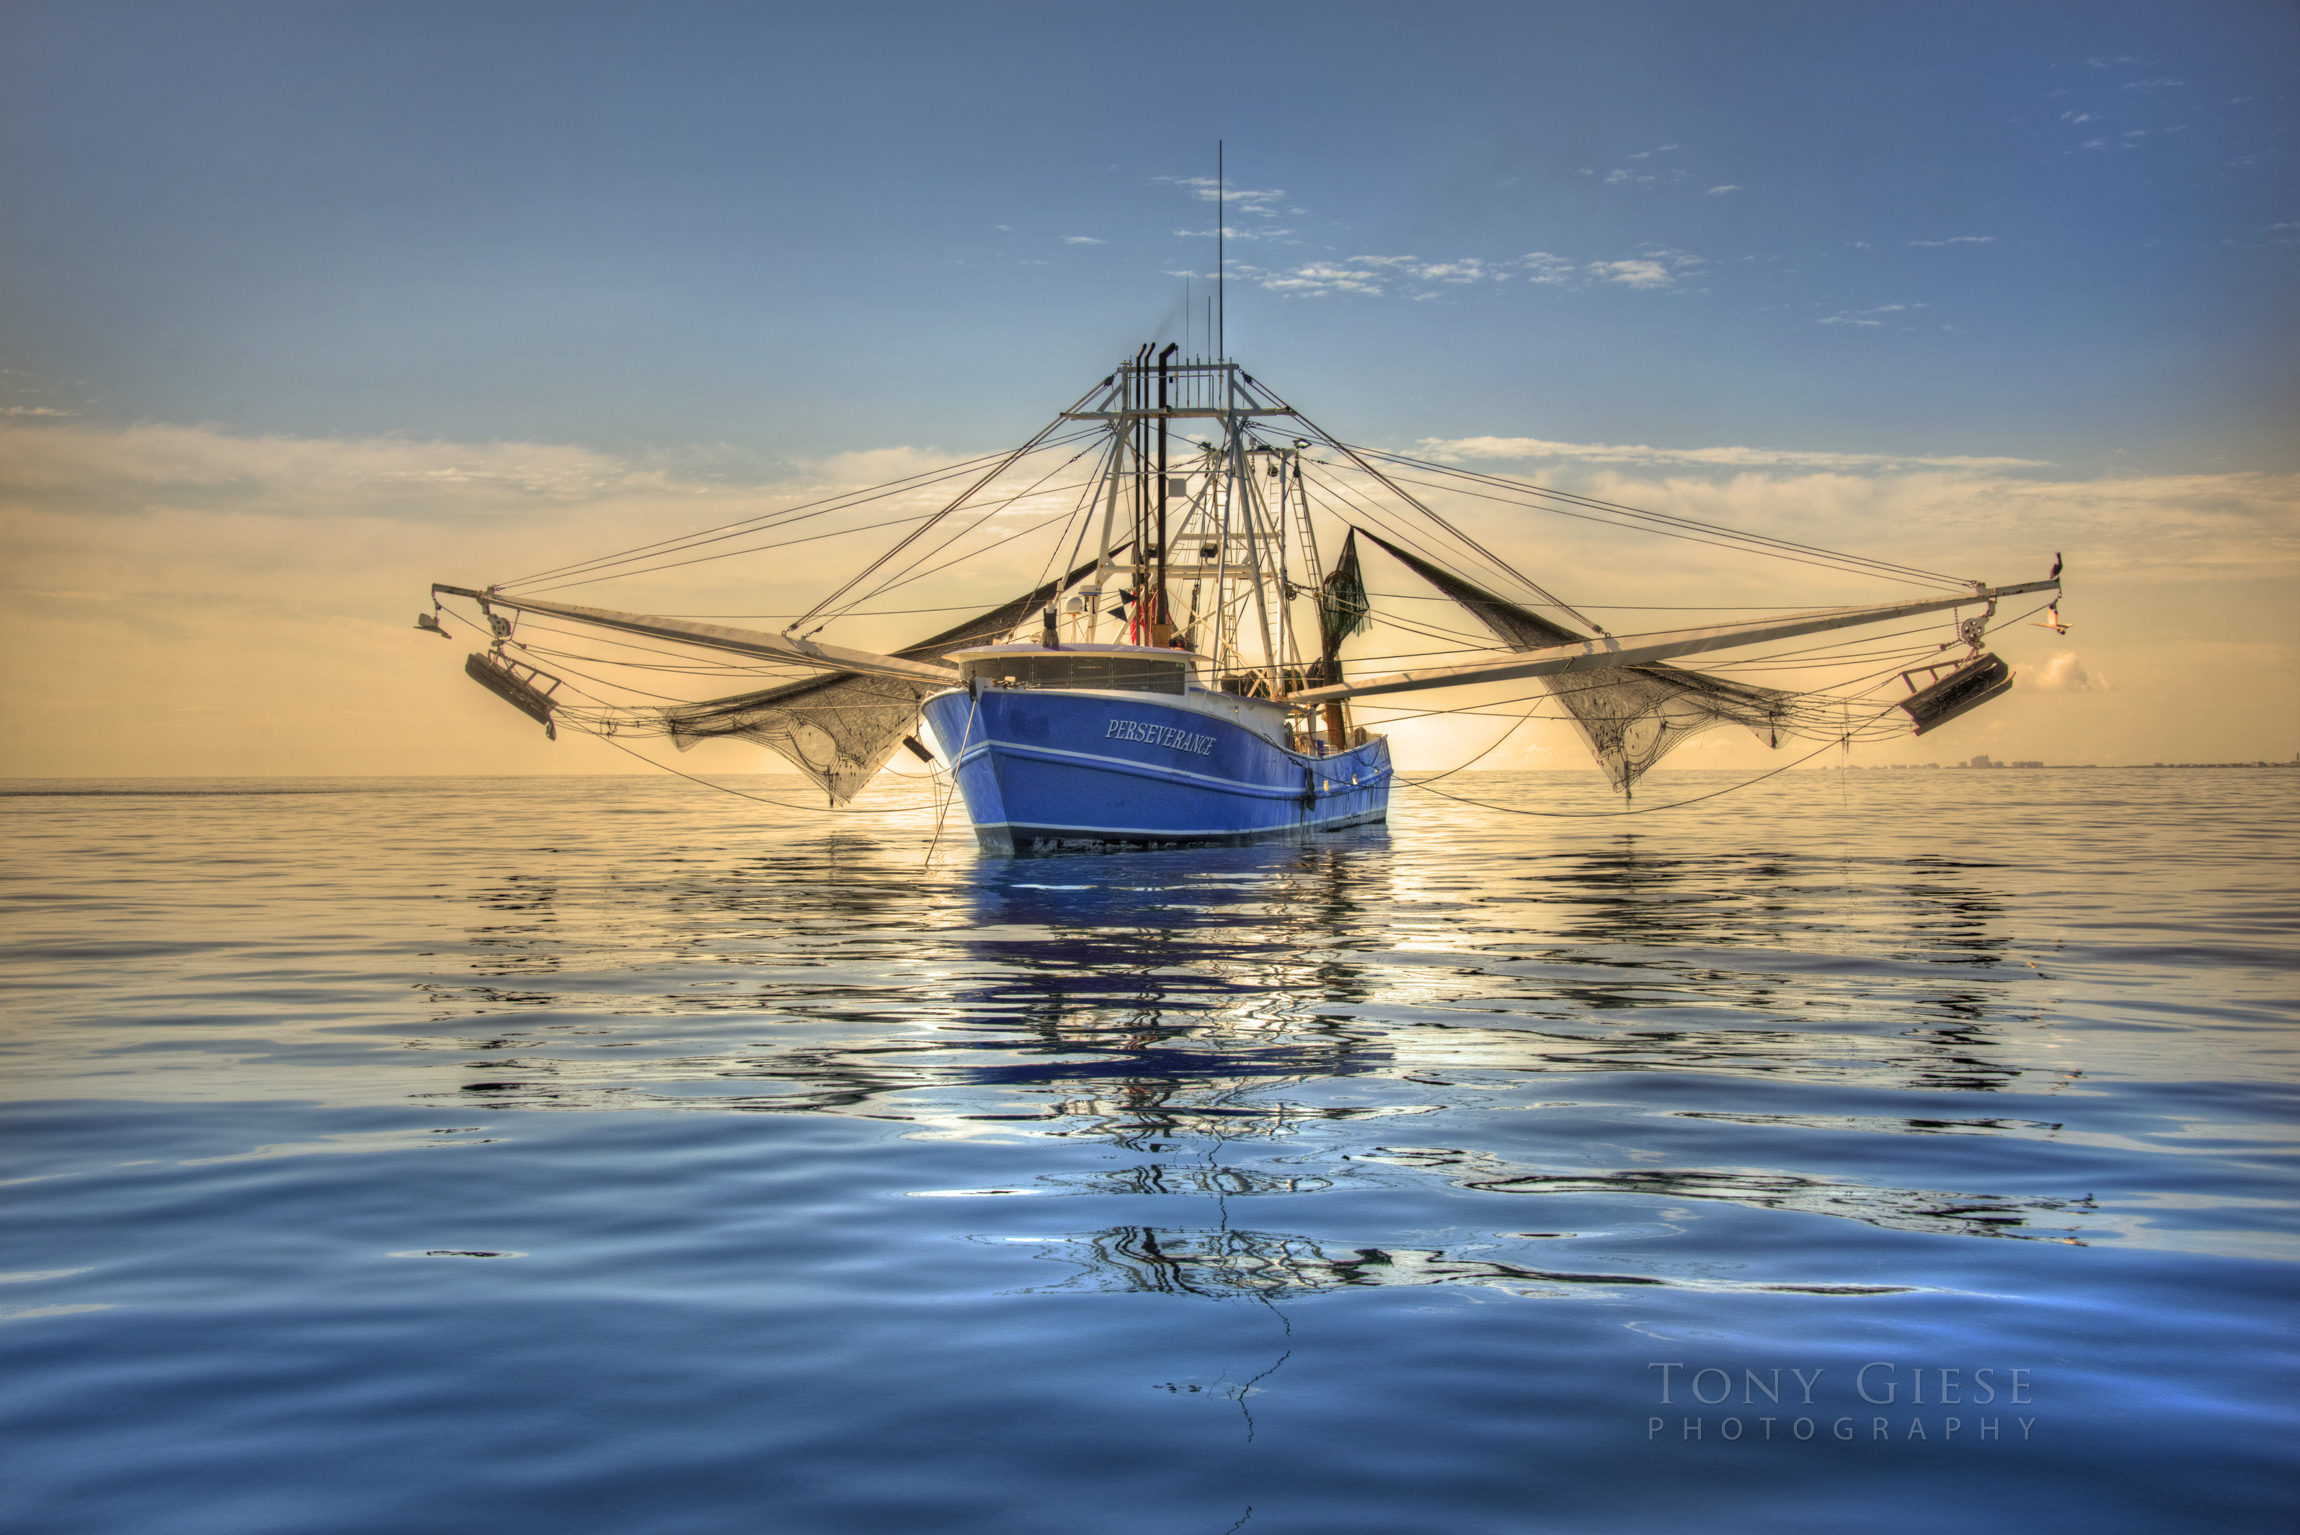 Shrimp boat resting with nets up. Upon calm ocean. Offshore Daytona Beach.